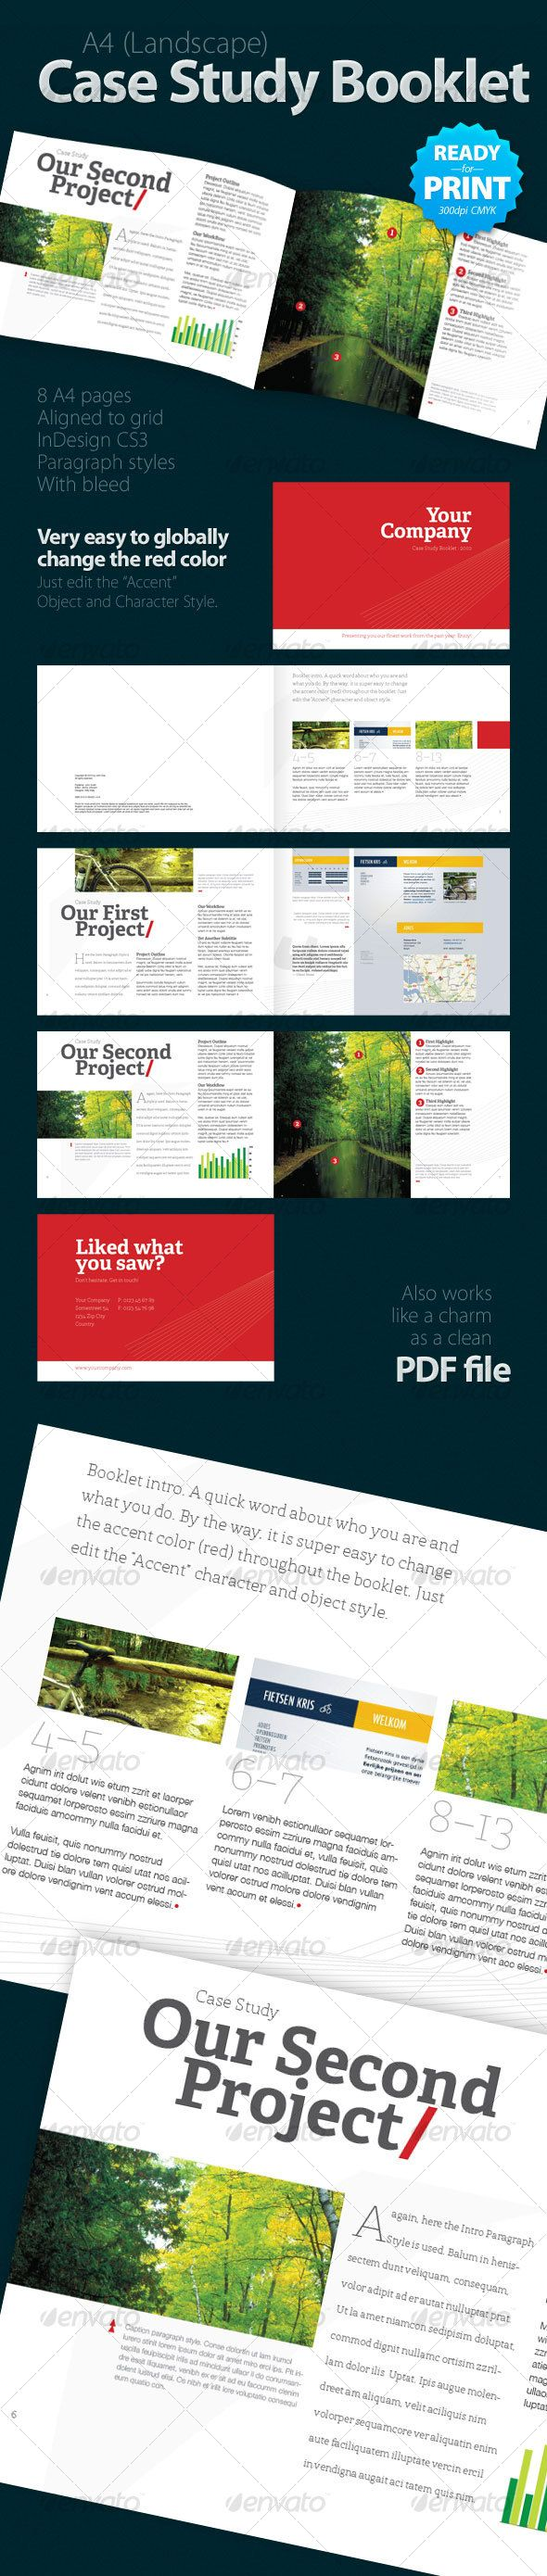 Case Study Booklet (8 pages) | Brochures, Brochure template and ...